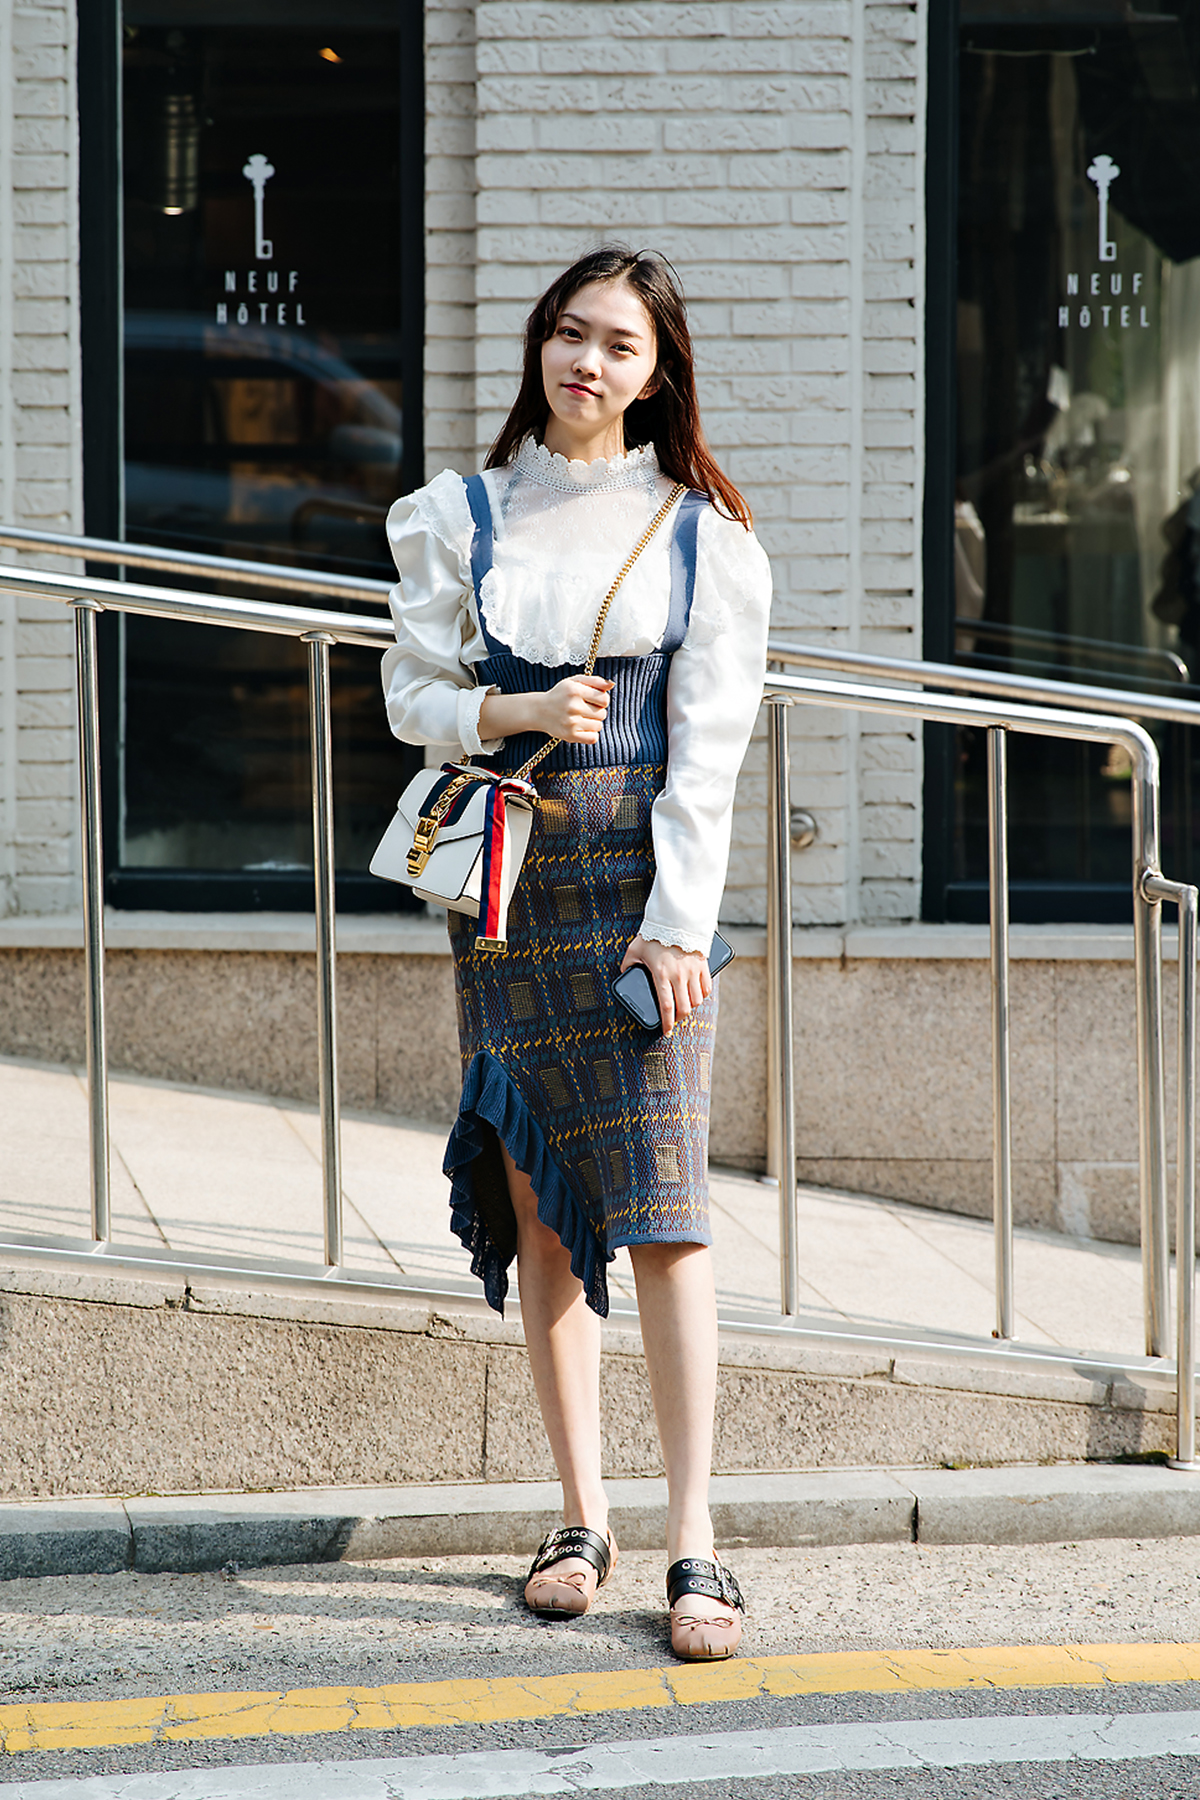 Zhangyiming, Street style women spring 2018 in seoul